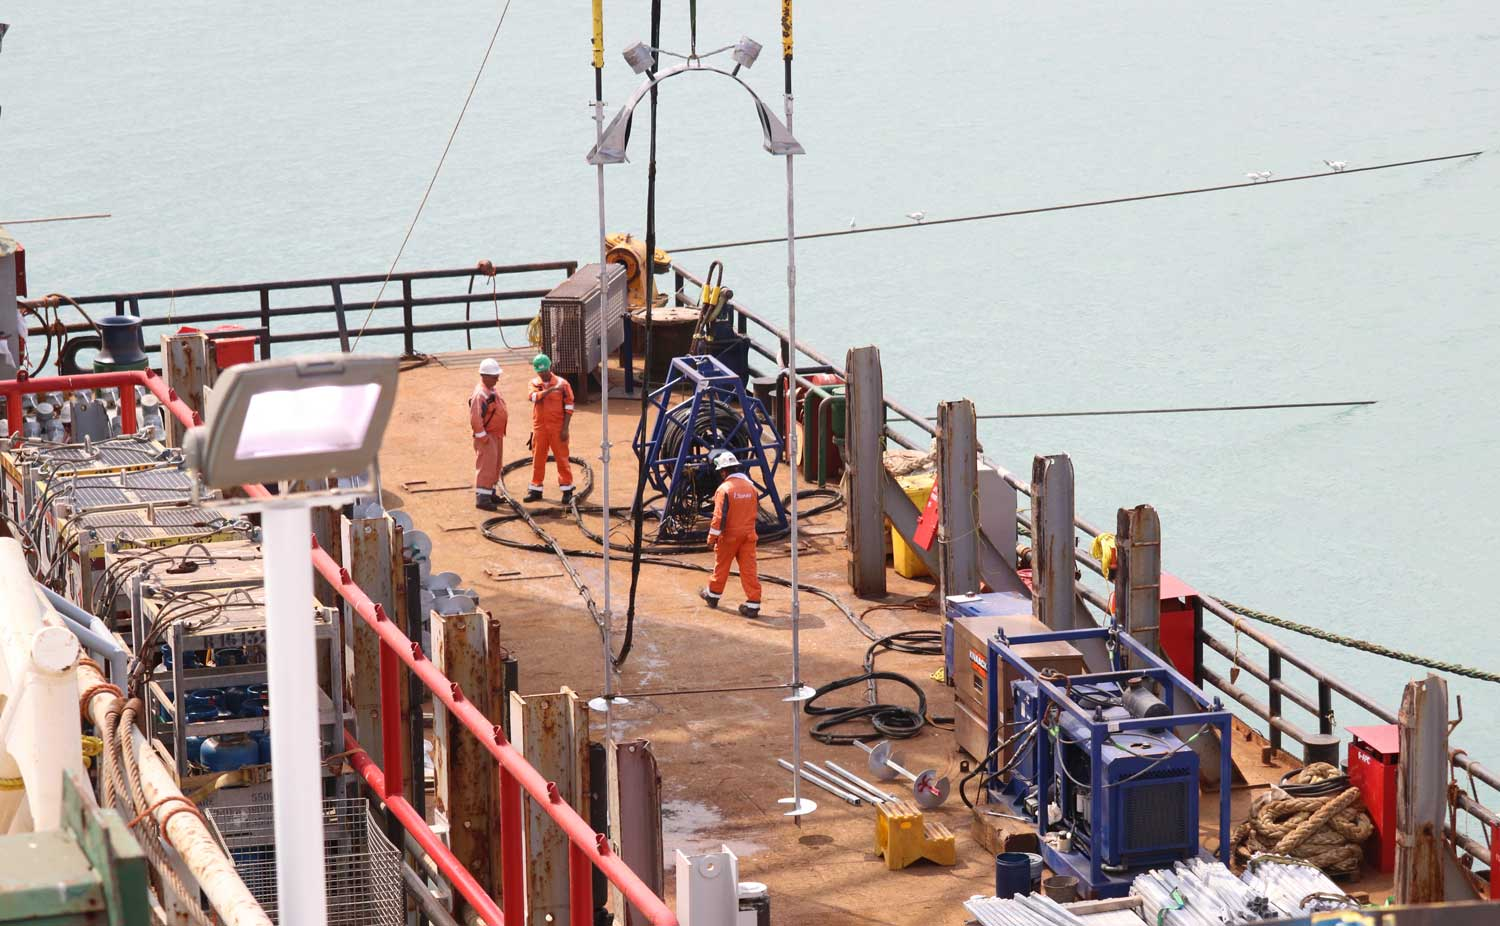 TorcSill helical piles being installed in a marine environment under water for offshore pipelines